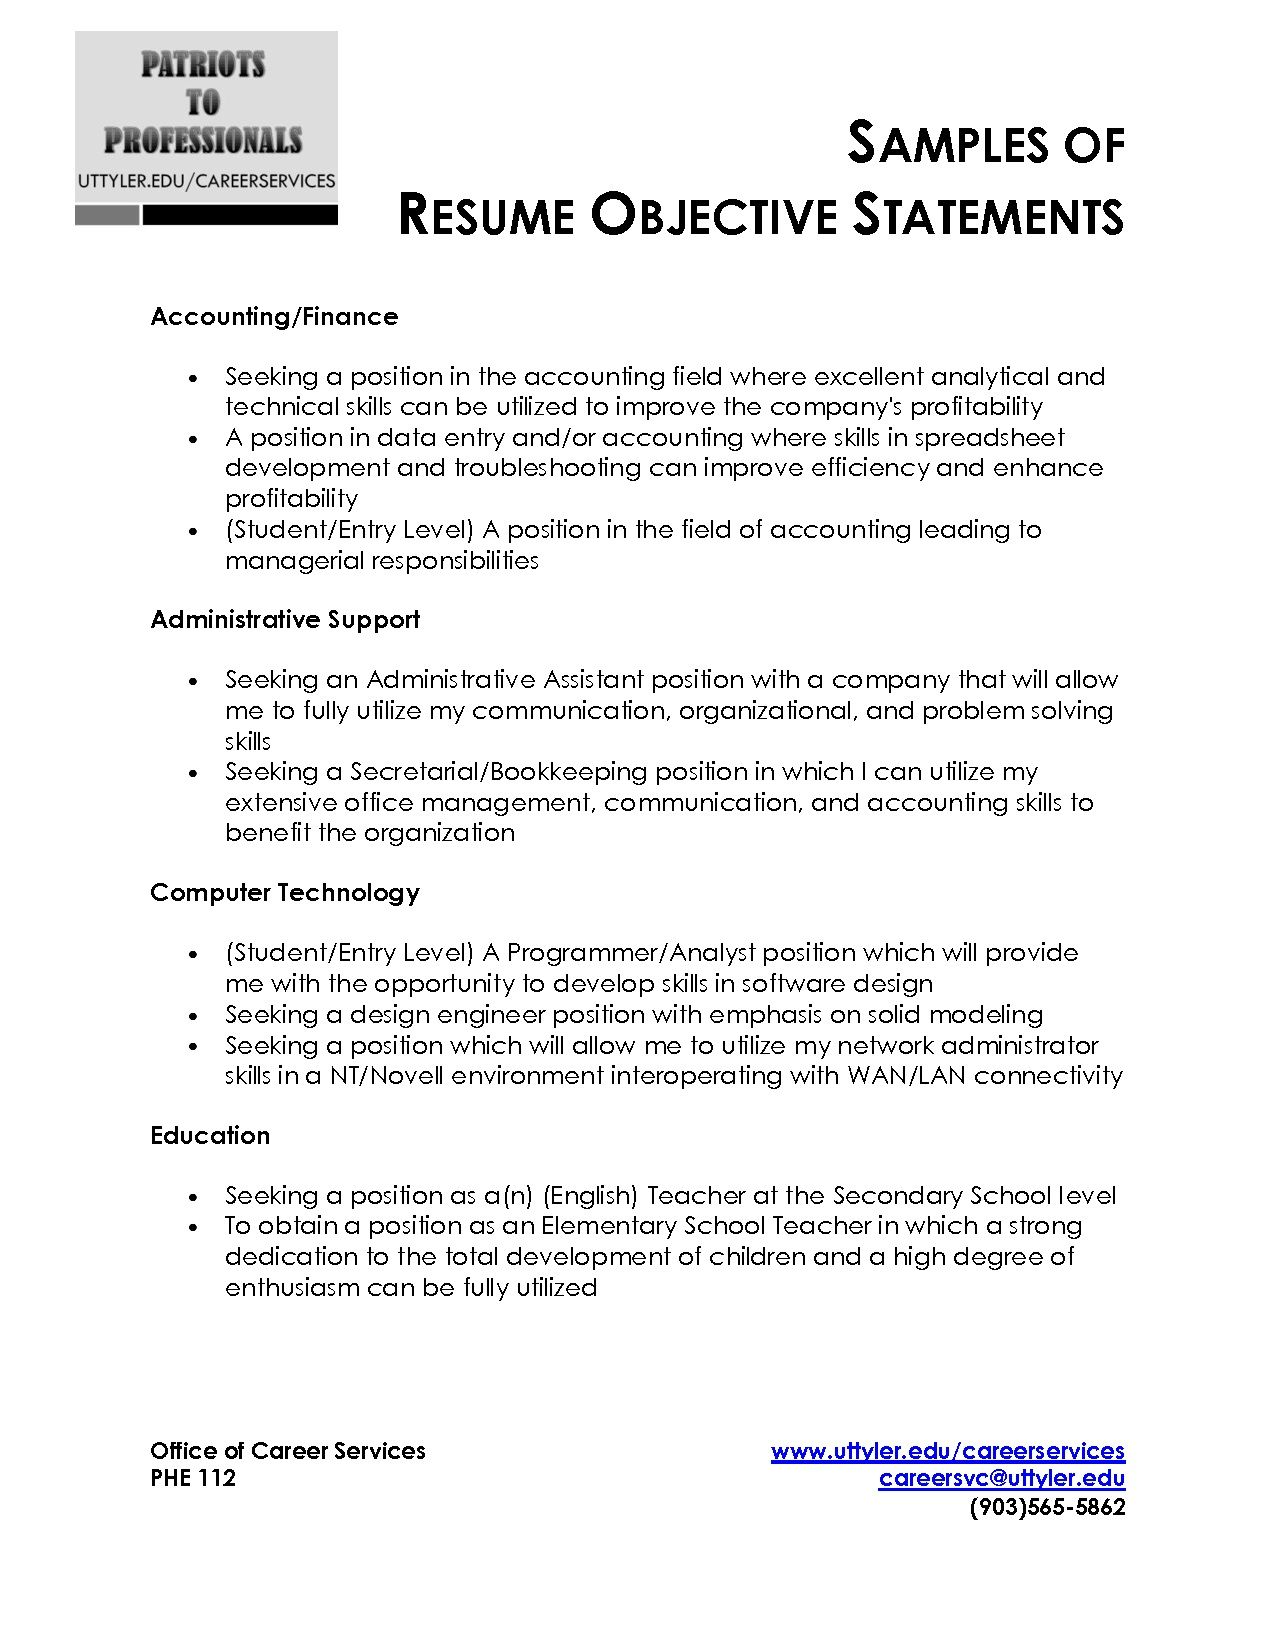 Personal Trainer Resume Objective Examples Pin By Rachel Franco On Resume Writing Sample Resume